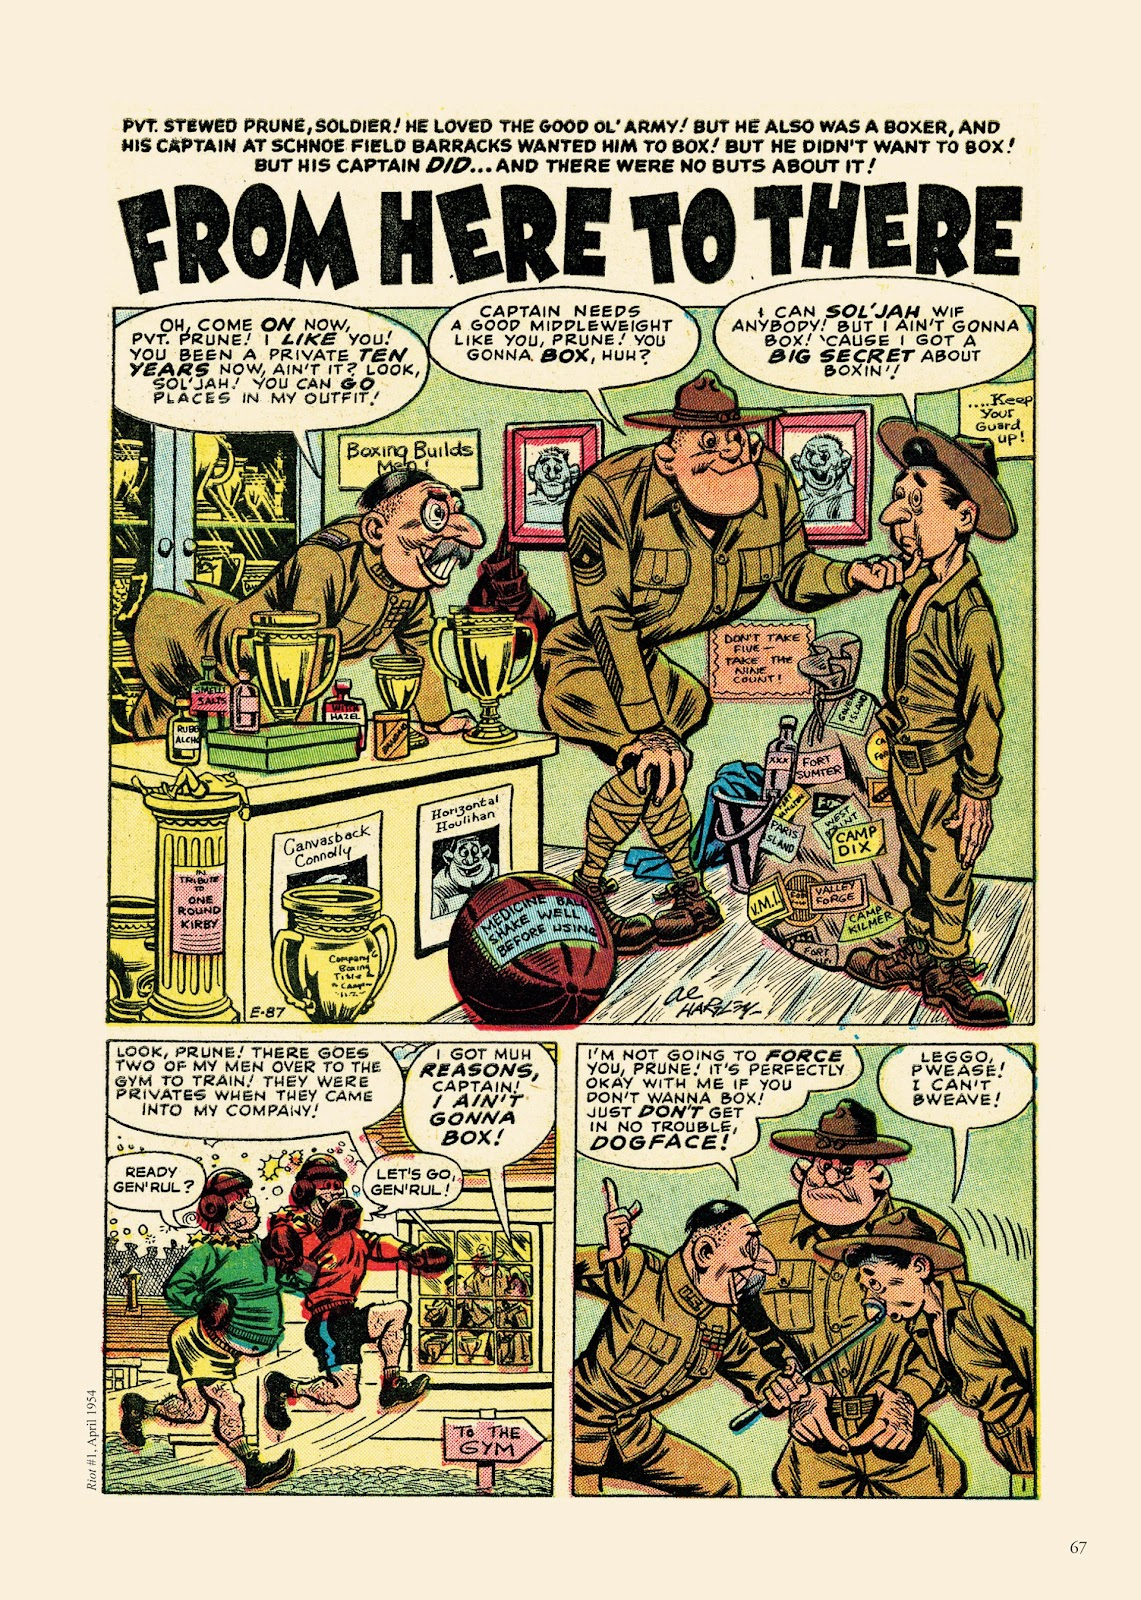 Read online Sincerest Form of Parody: The Best 1950s MAD-Inspired Satirical Comics comic -  Issue # TPB (Part 1) - 68